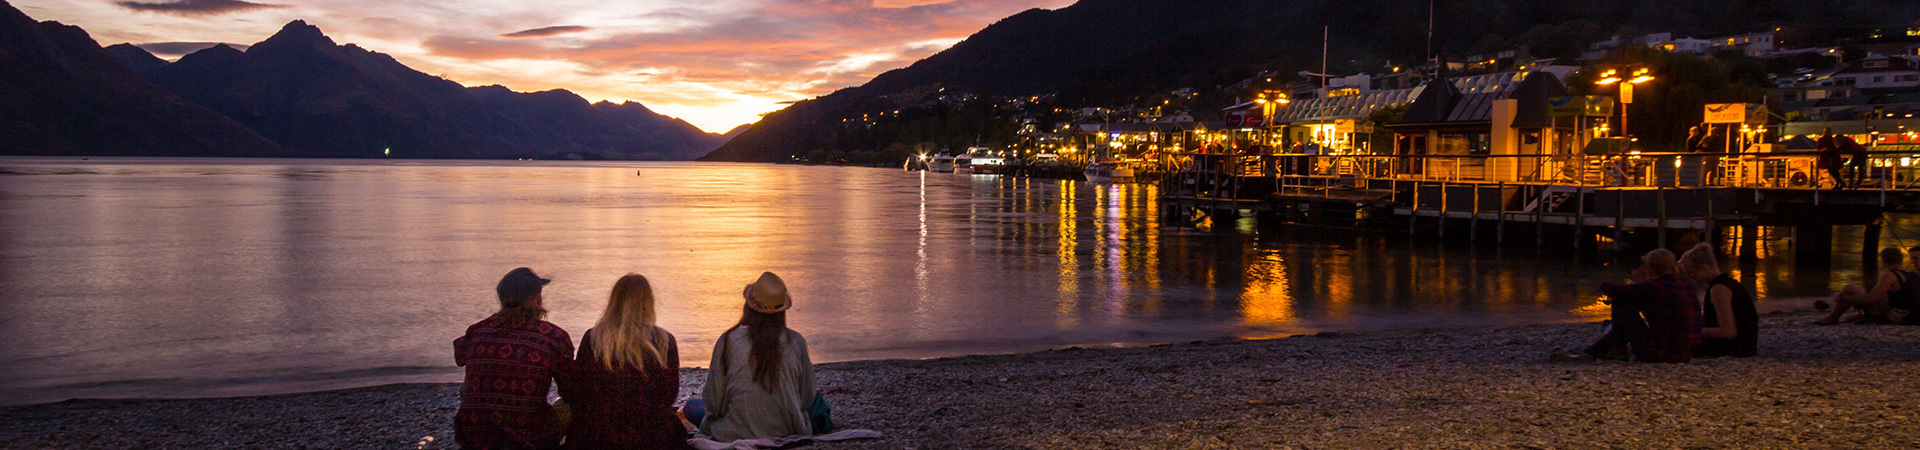 People watching the sunset in Queenstown, New Zealand